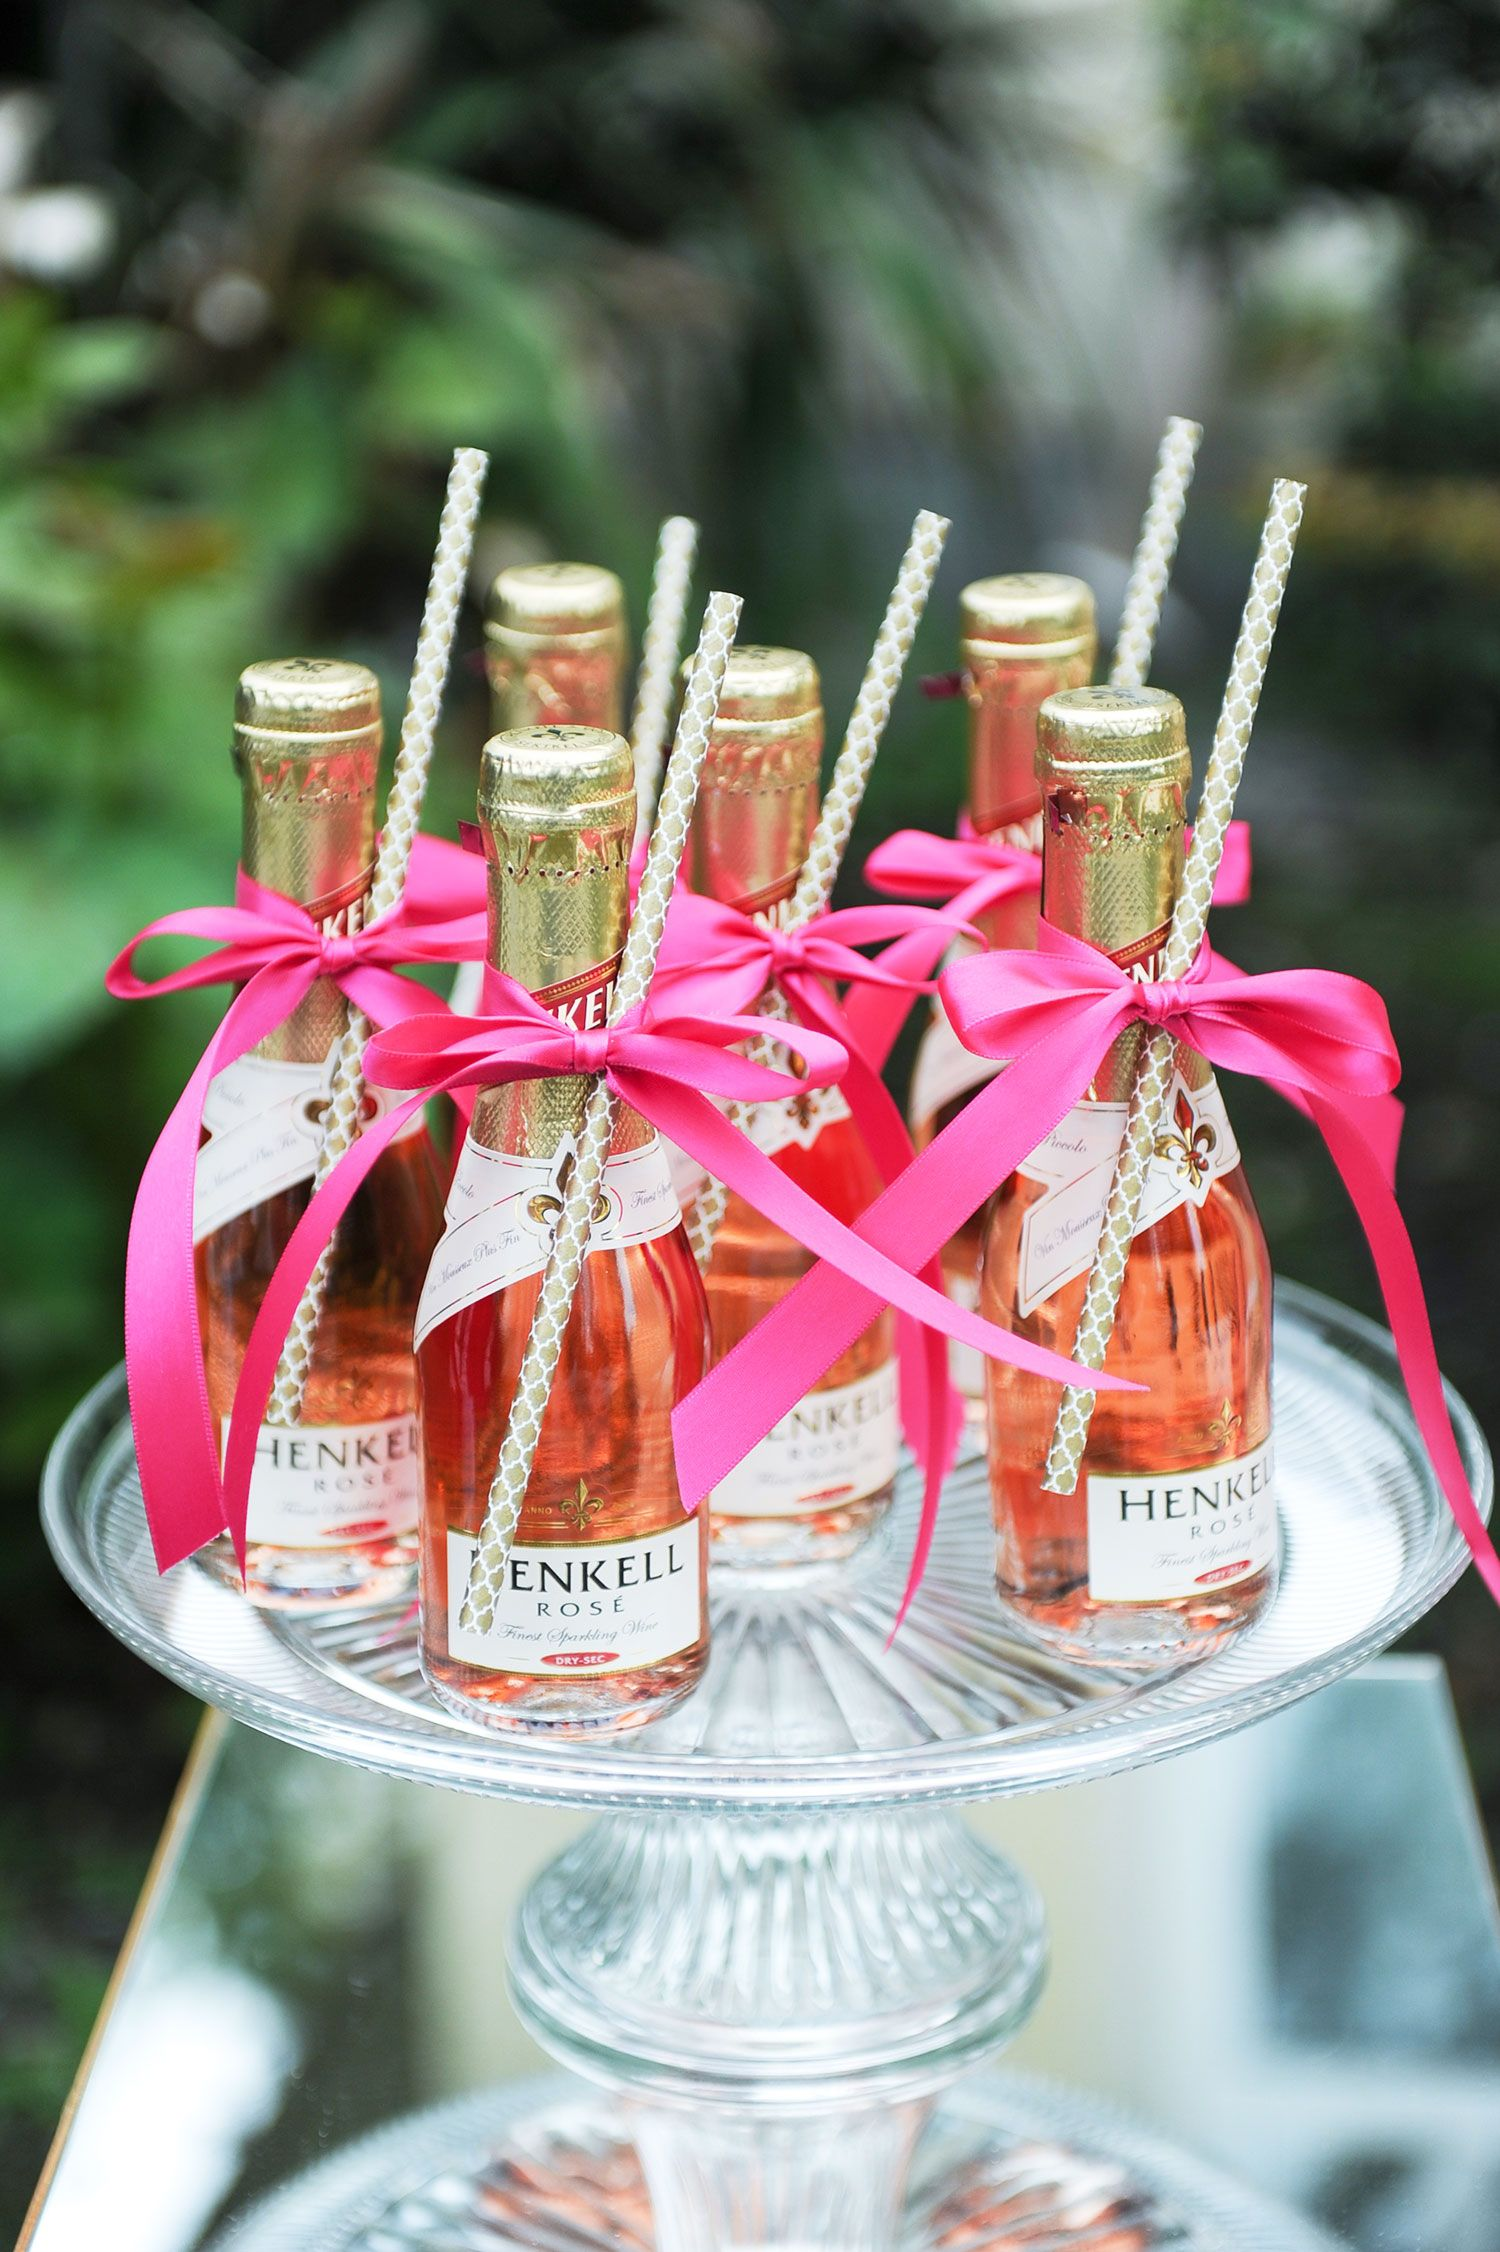 miniature champagne bottles on ice {photo via @Alea Moore Lovely ...